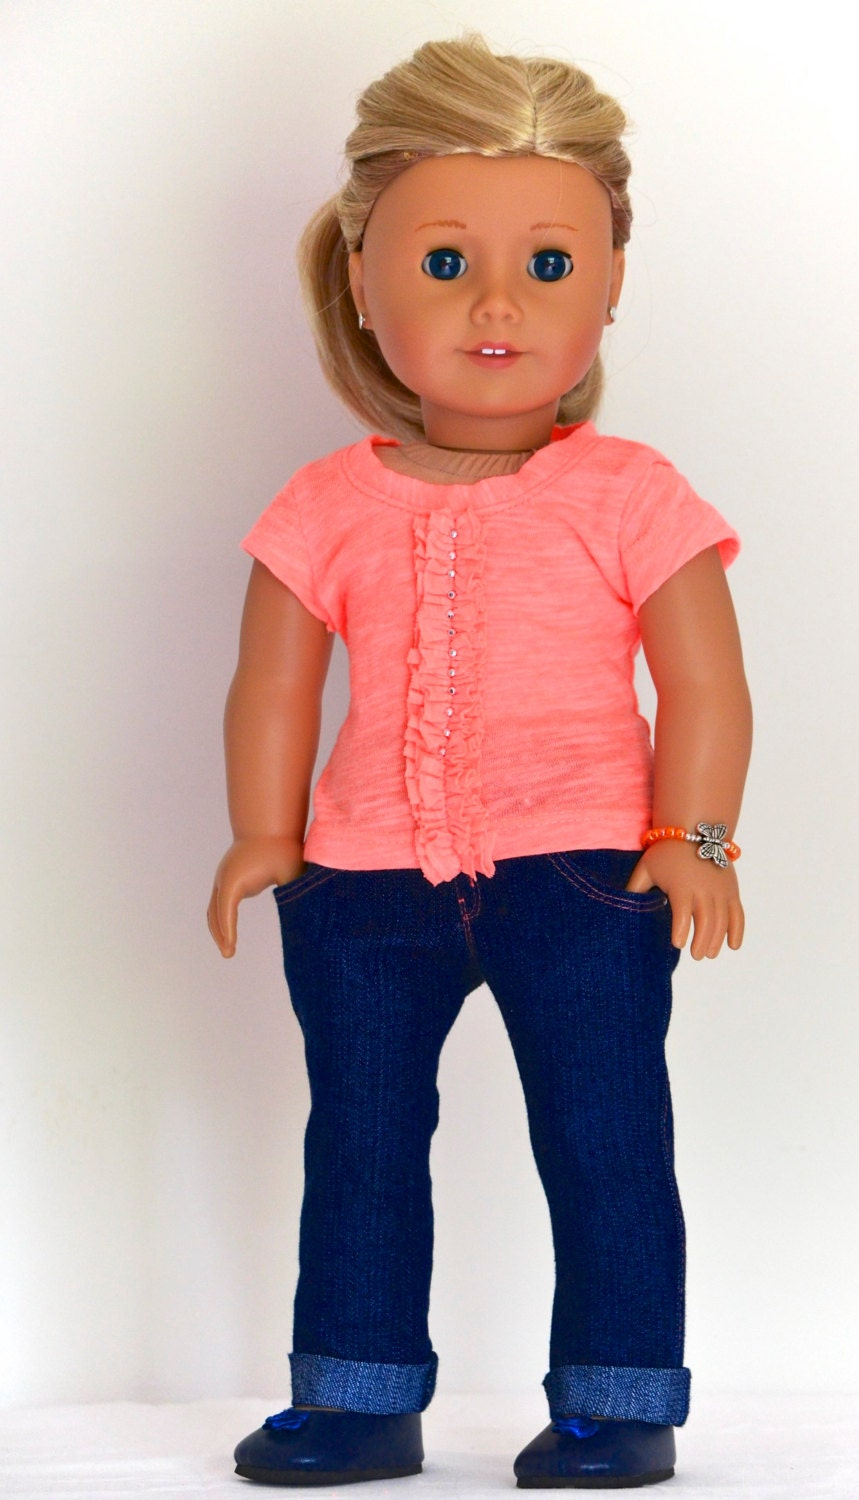 18 inch, American Girl  Doll Clothing. Skinny Jeans, Fashion Knit T-Shirt, bracelet